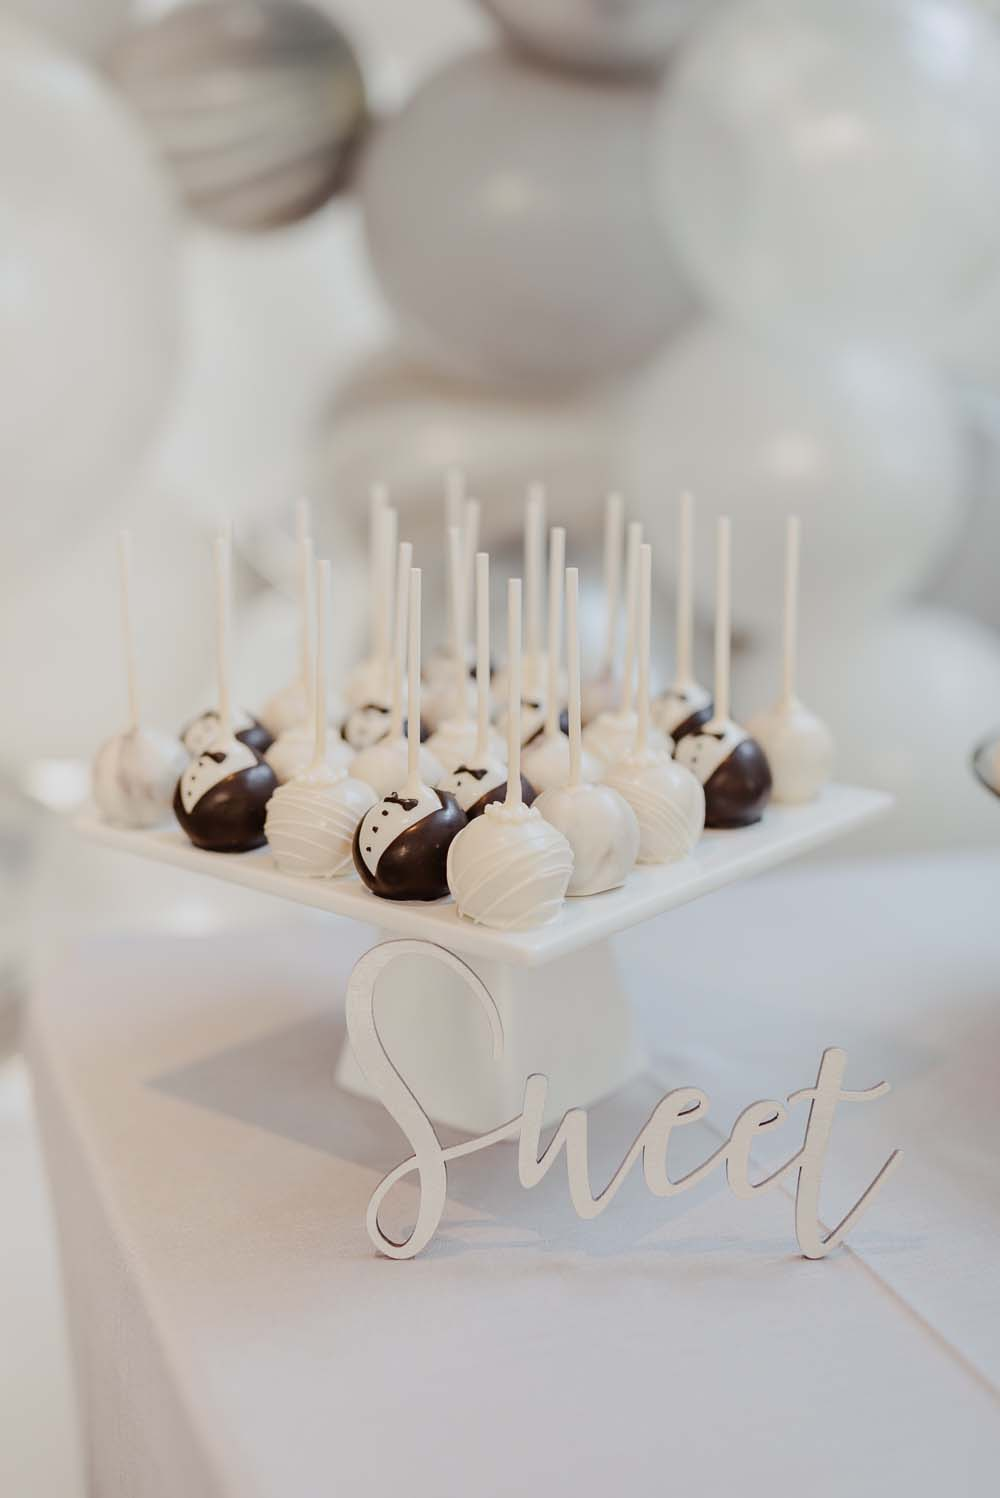 An Opulent Wedding At The Royal Conservatory Of Music - cakepop